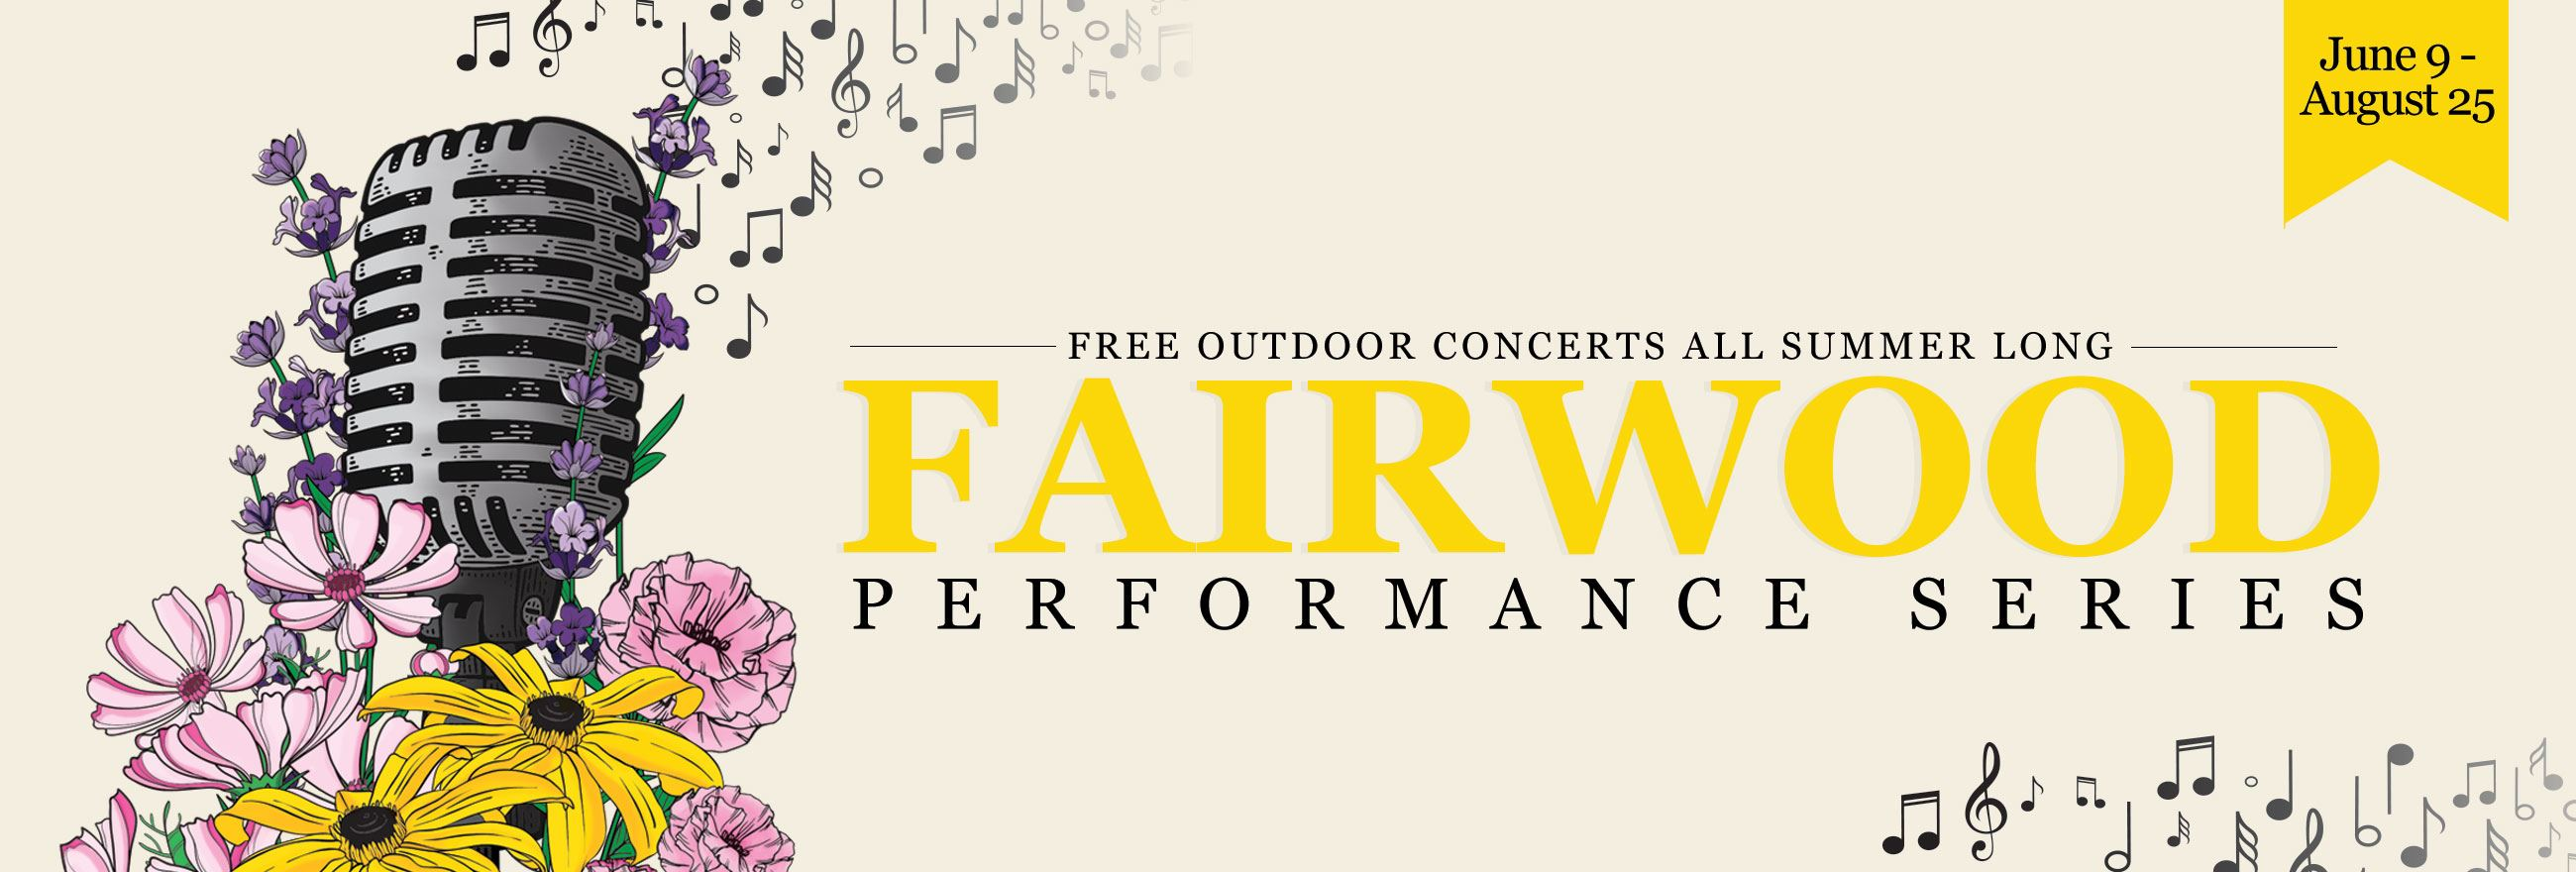 Fairwood Performance Series